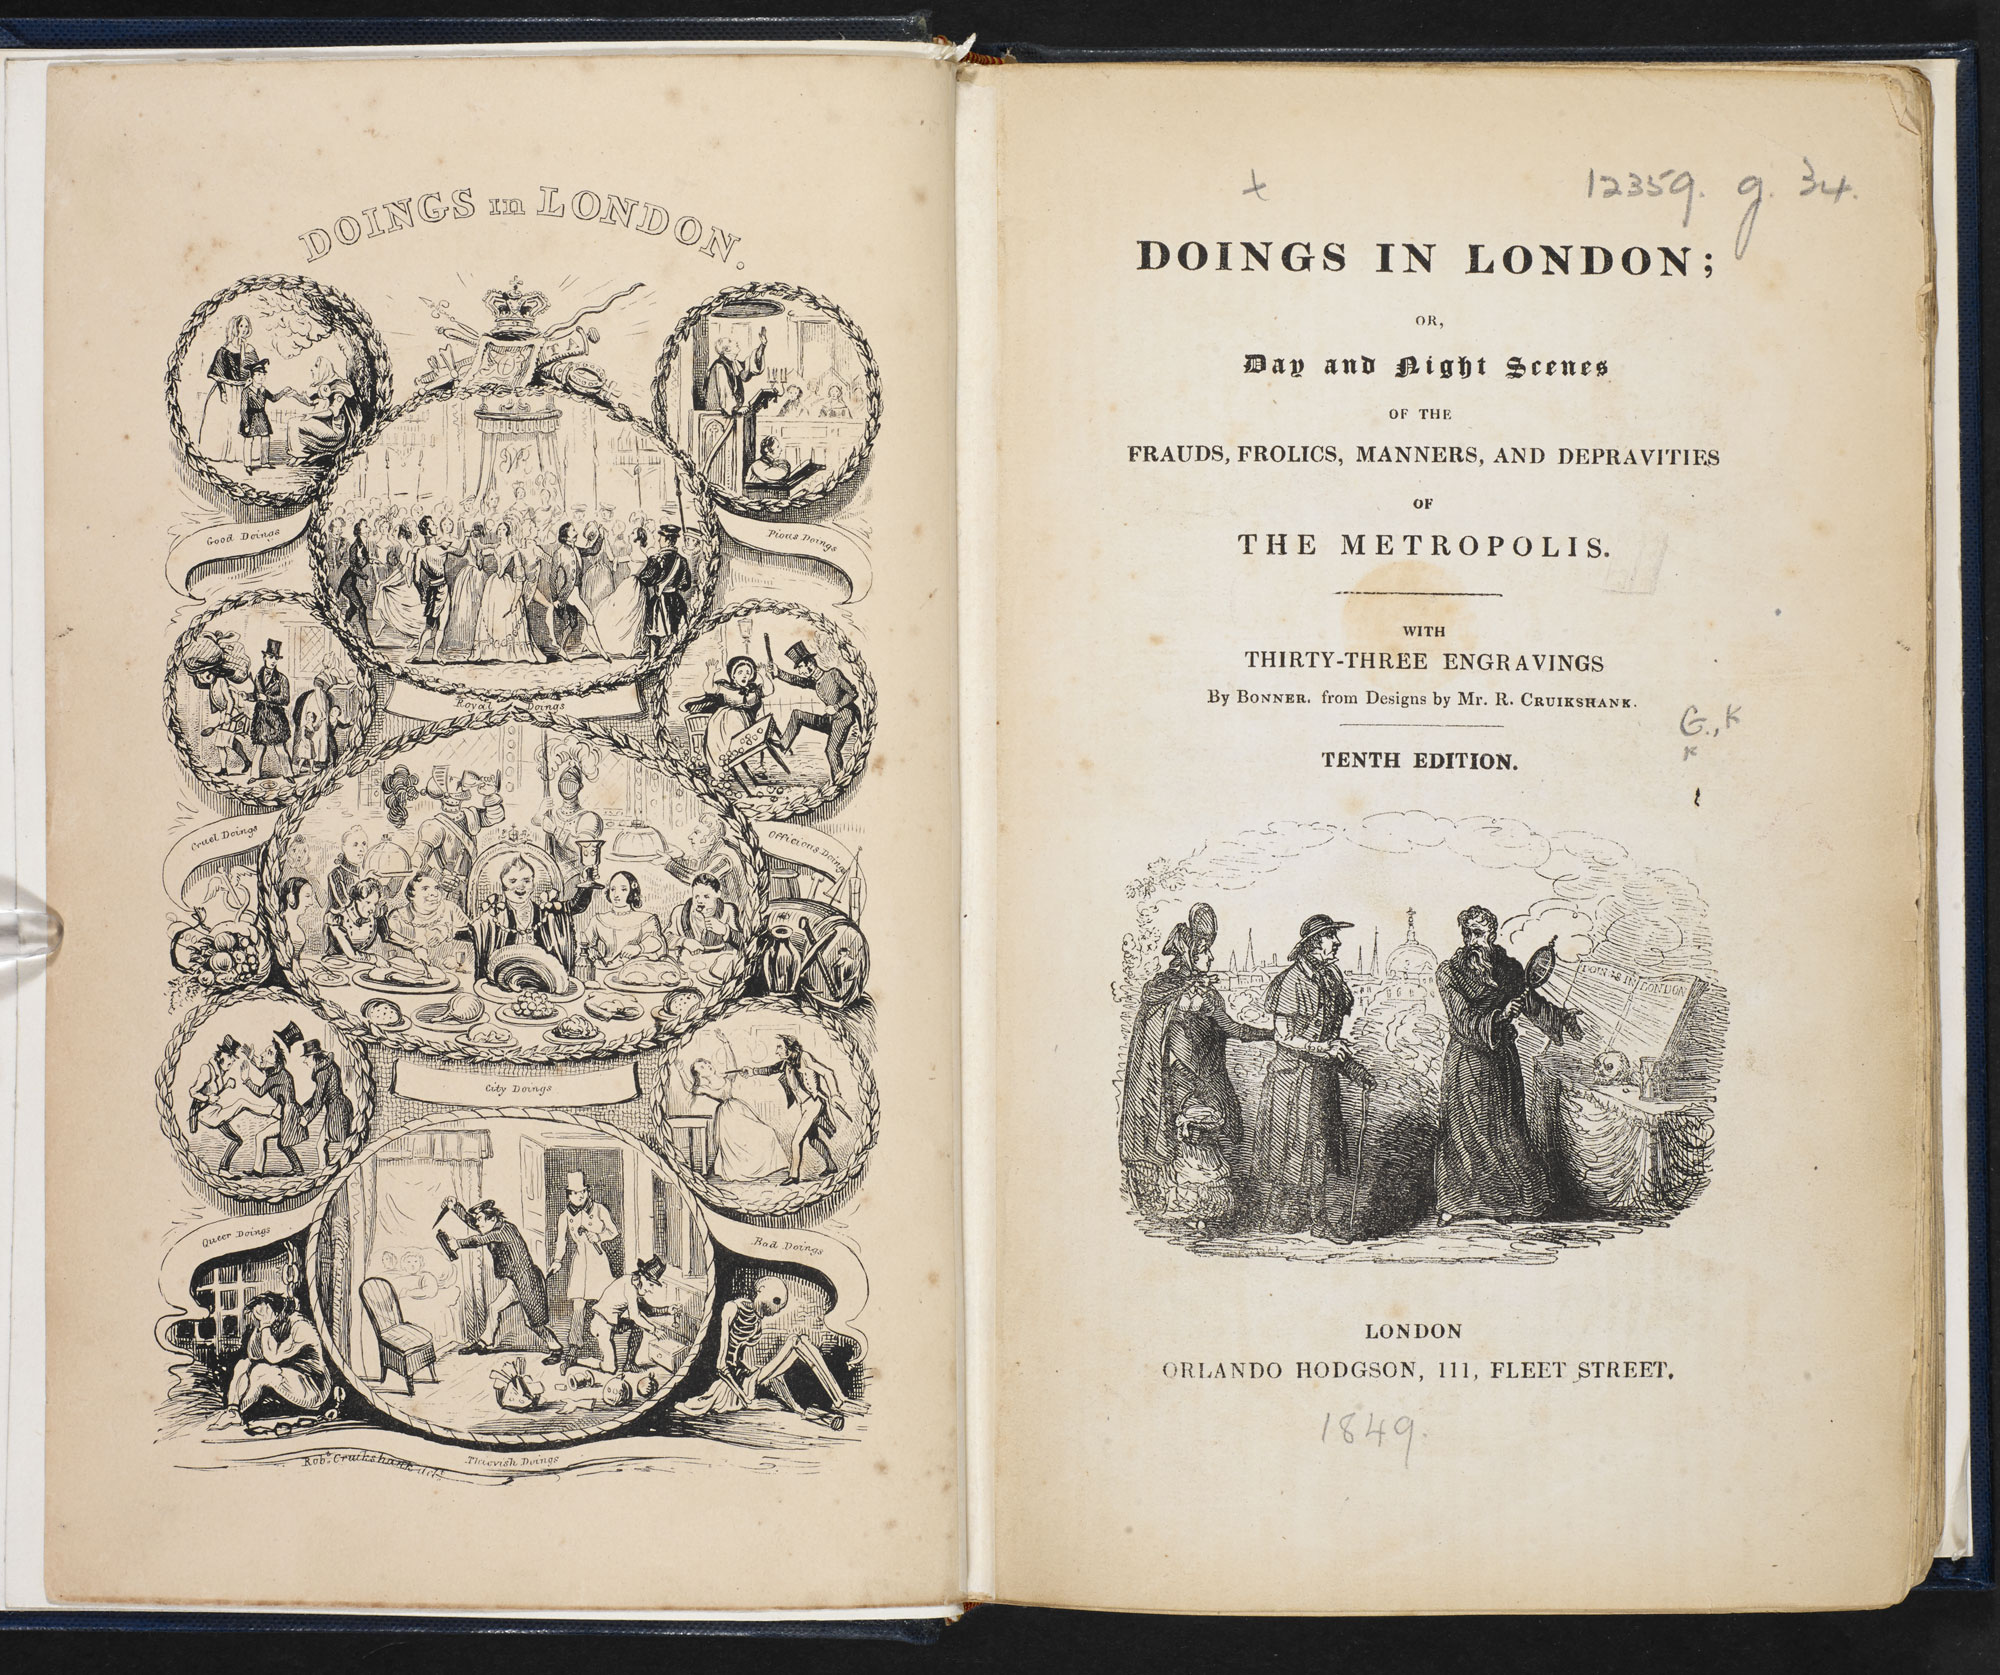 Doings in London [page: frontispiece and title page]